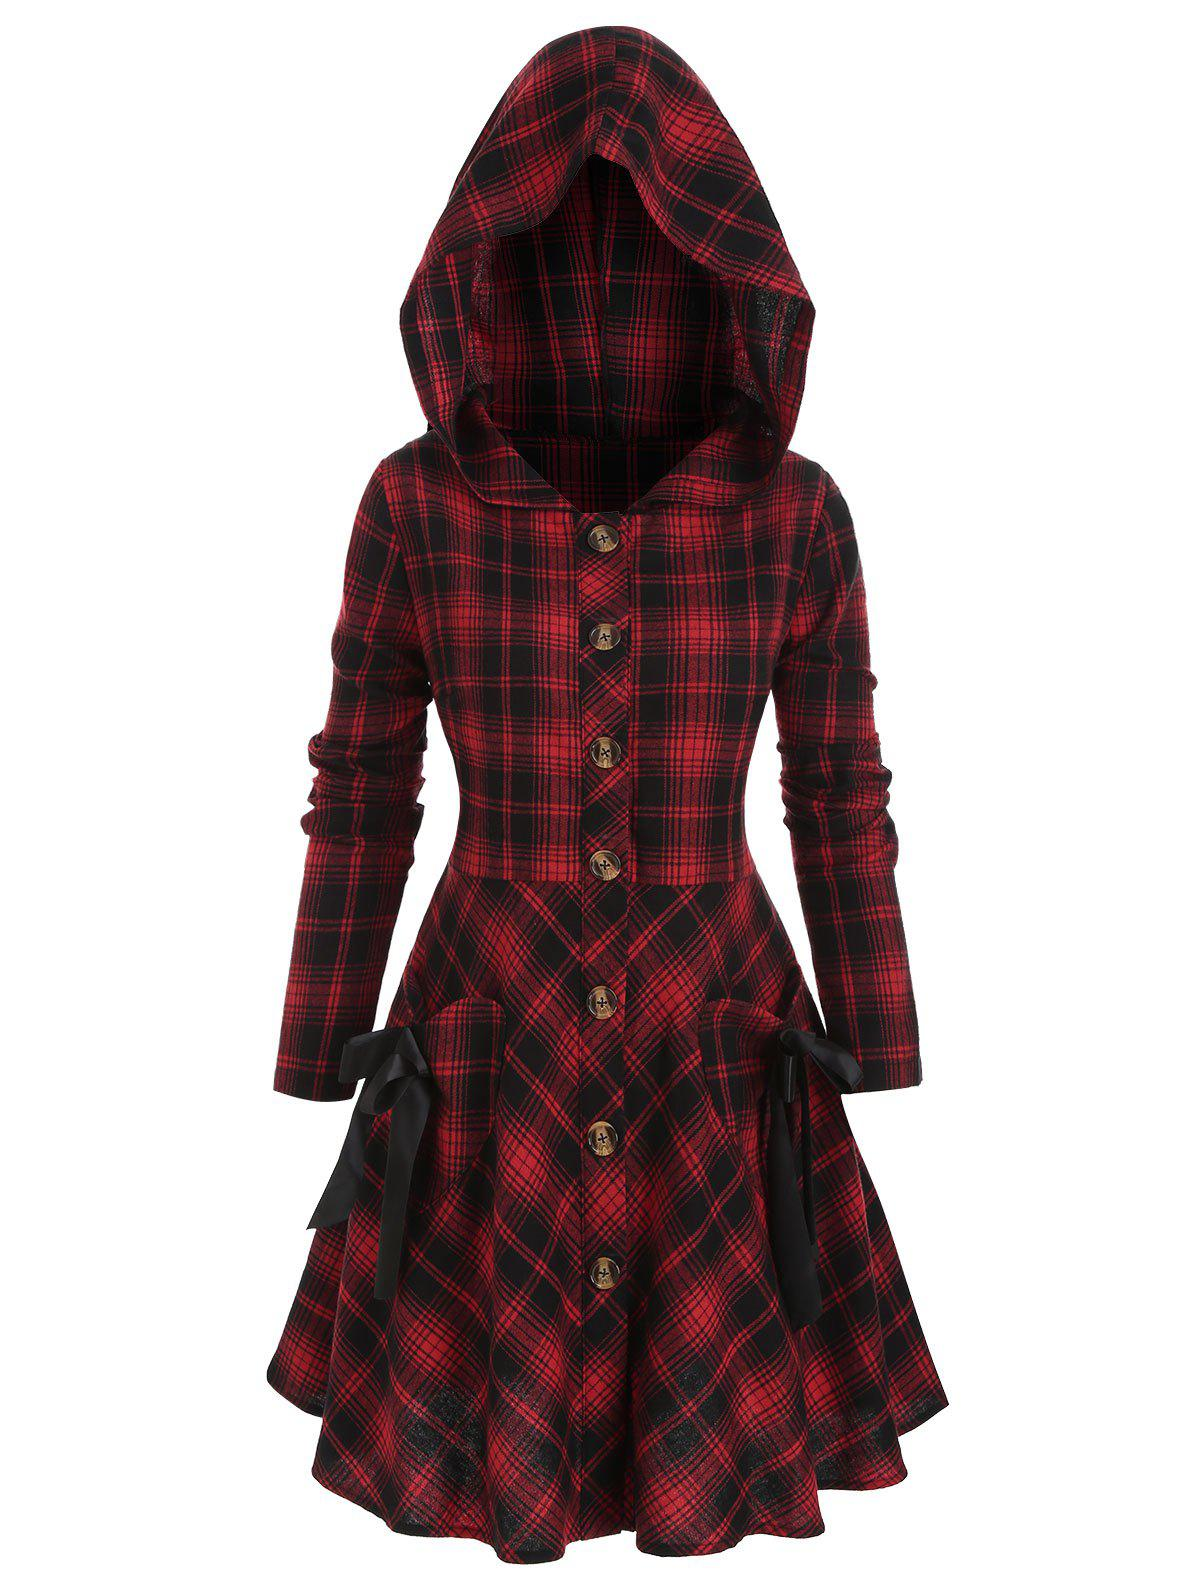 Plus Size Plaid Hooded Tie Skirted Button Front Coat - multicolor 5X